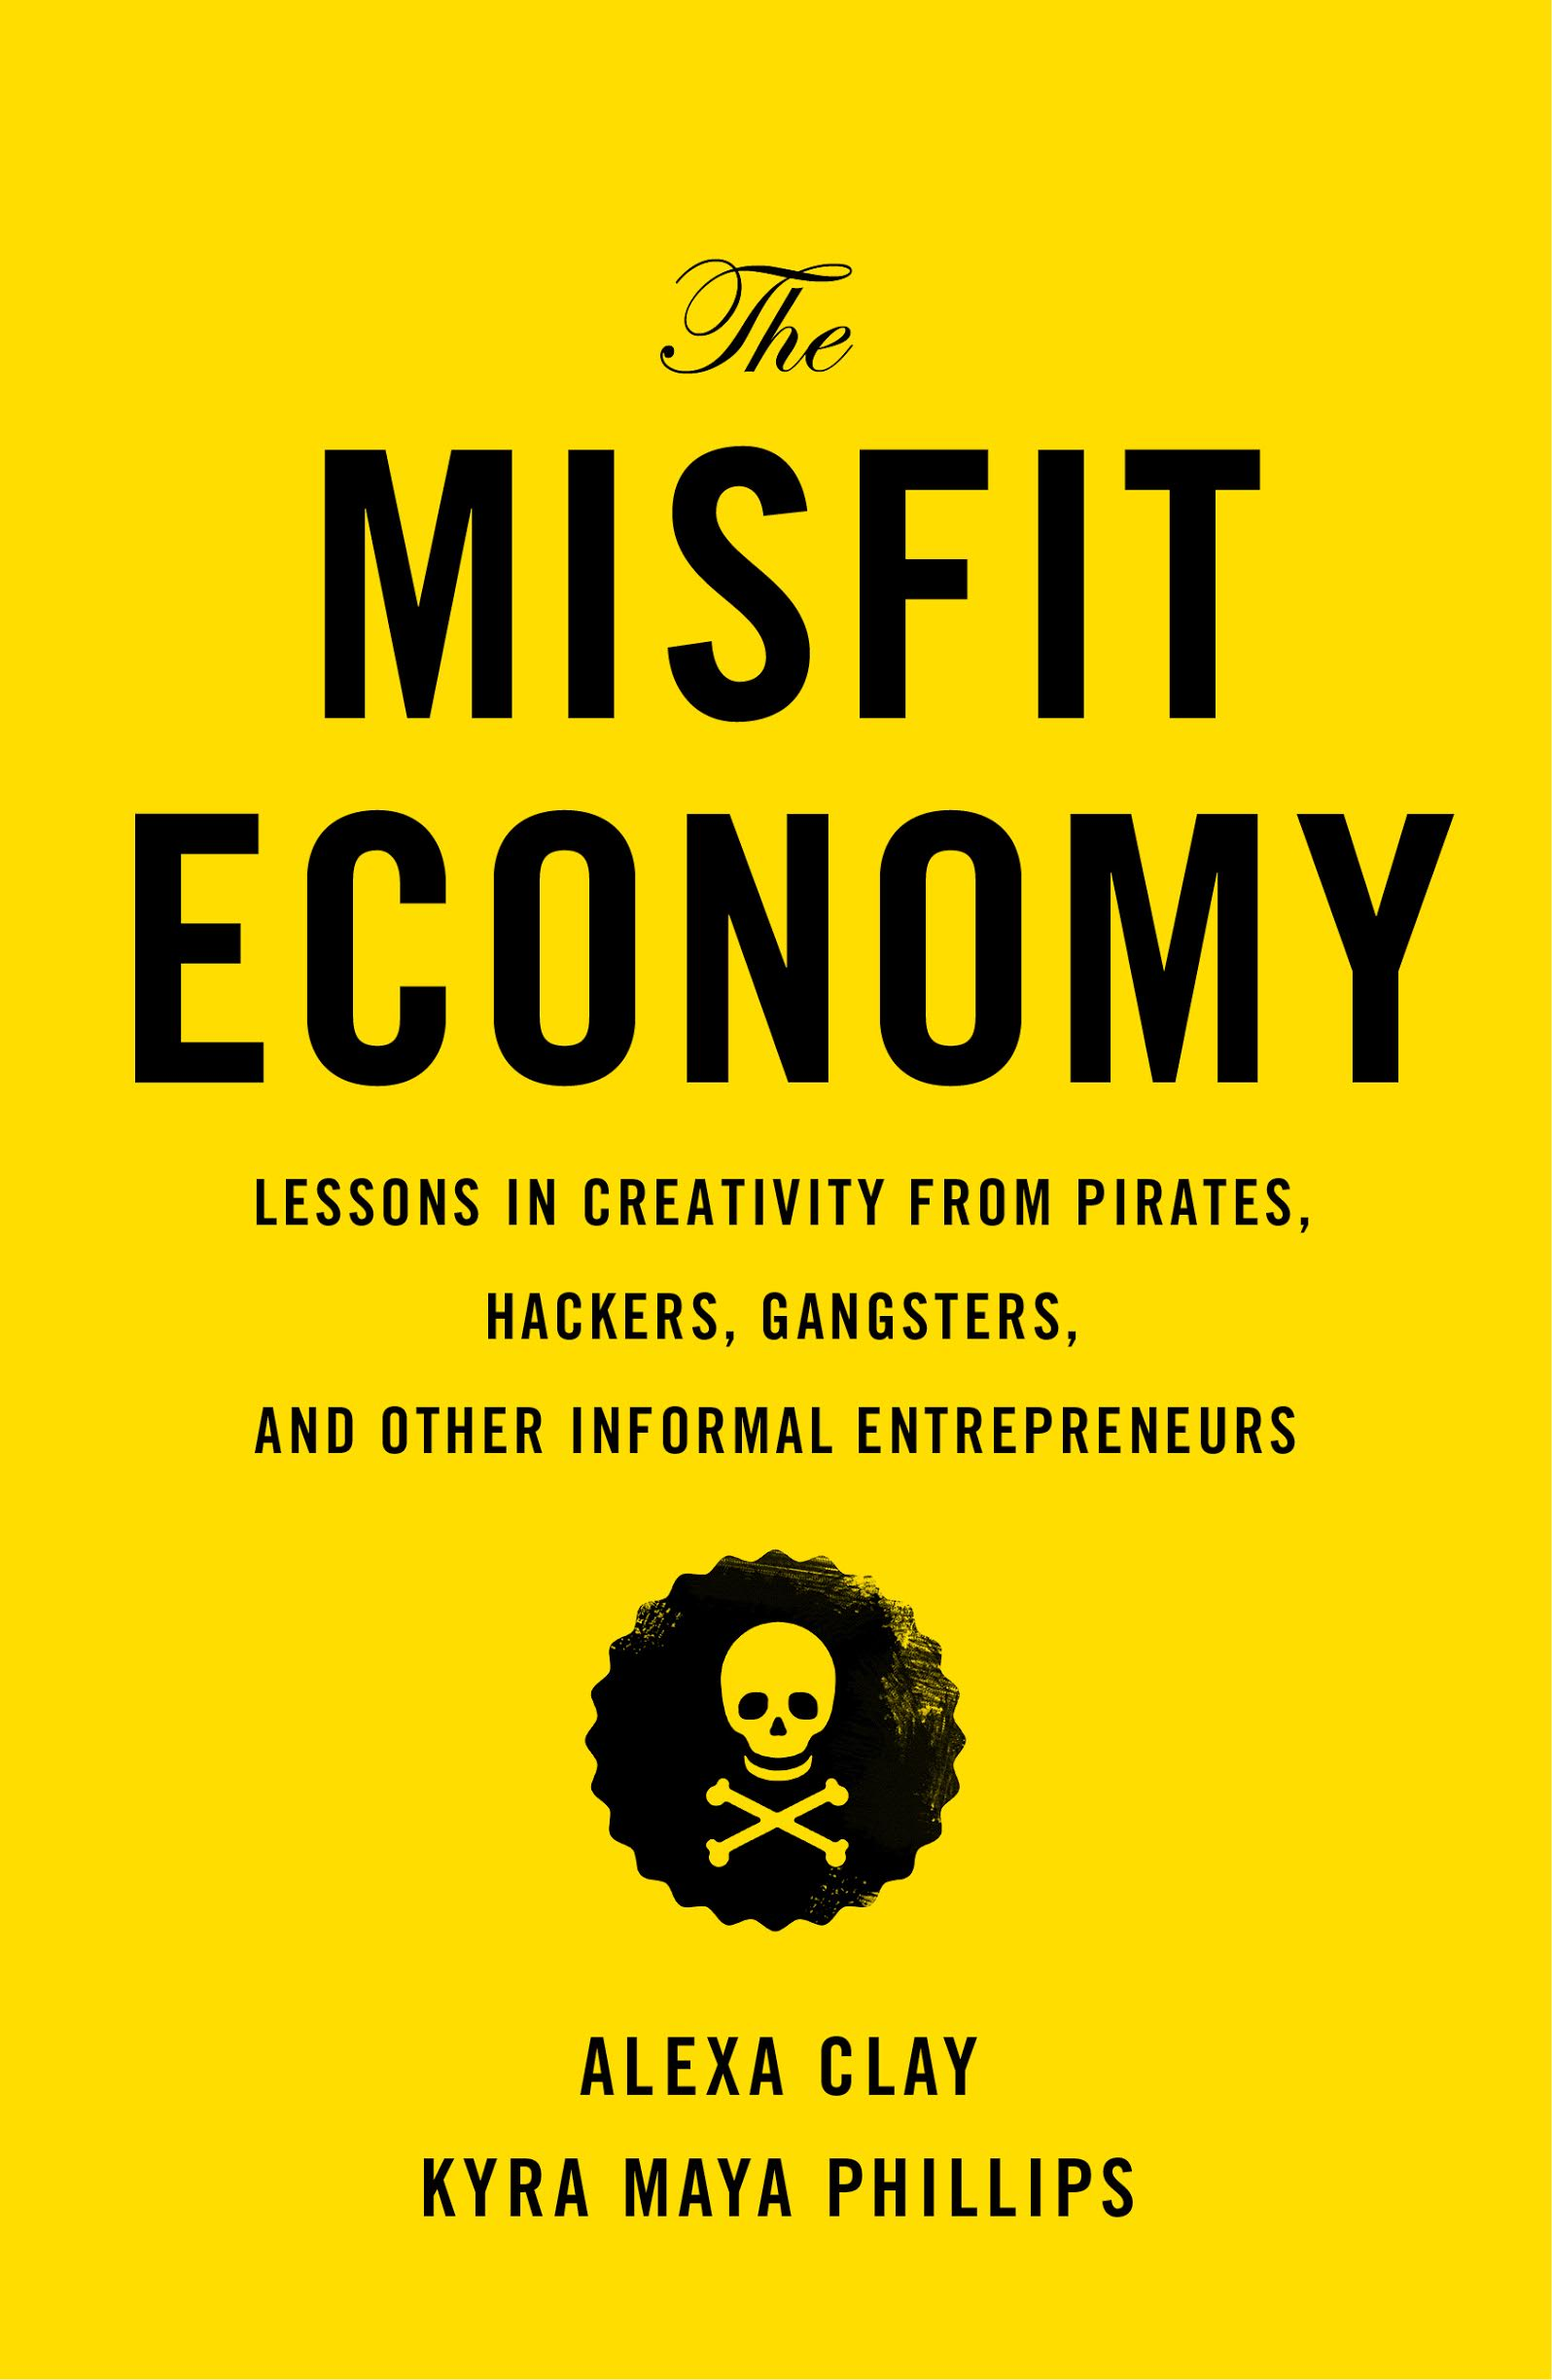 Cover of Misfit Economy book